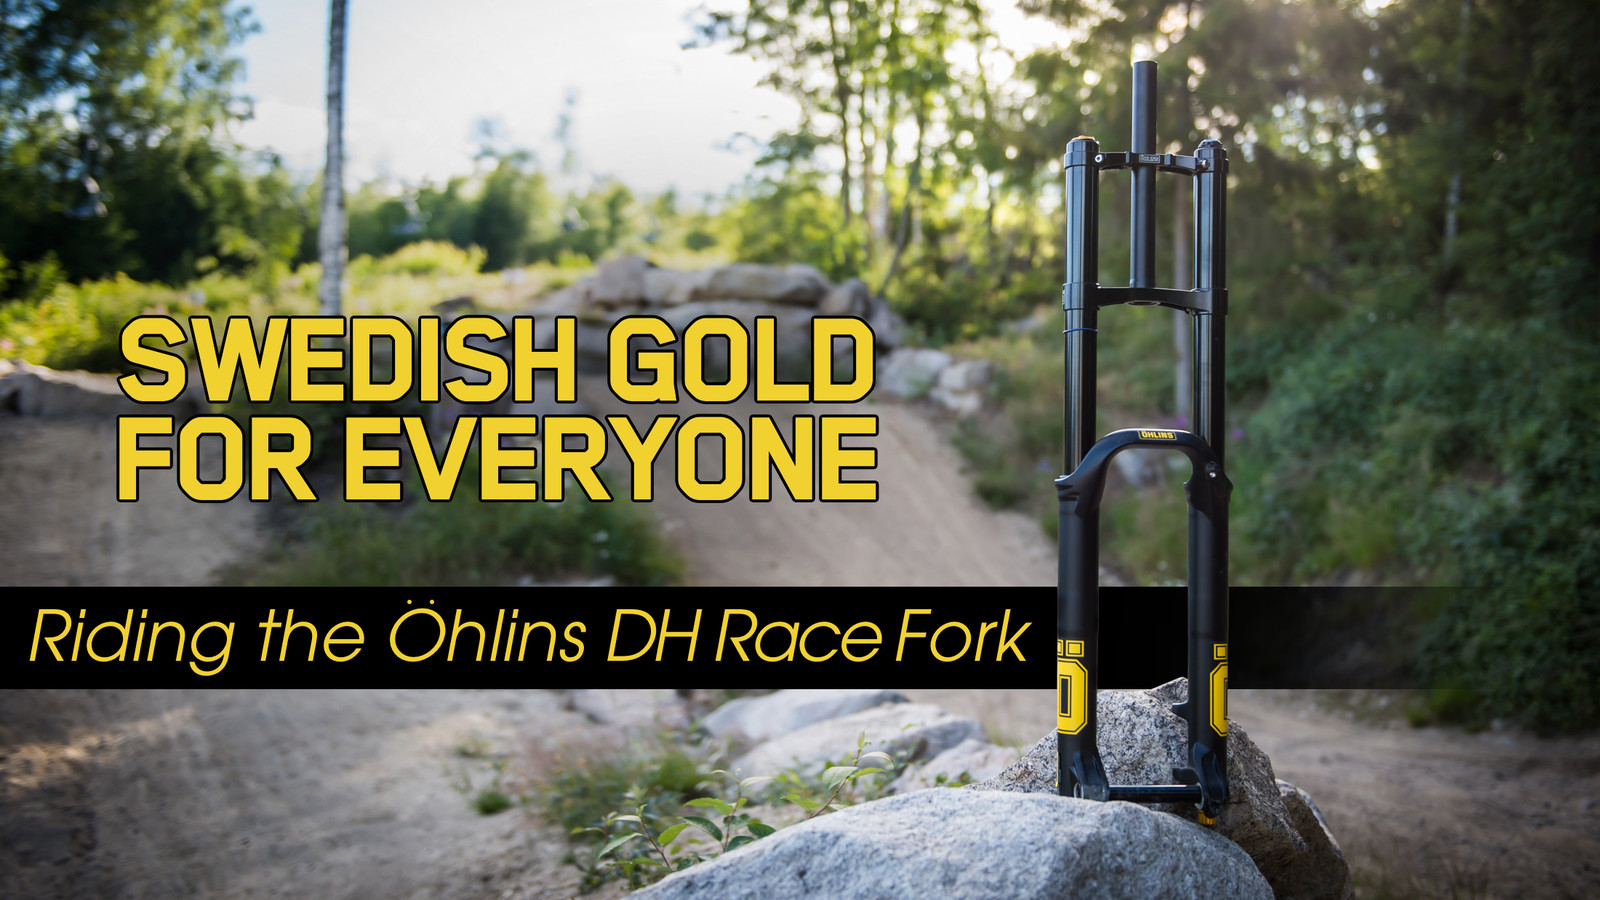 Swedish Gold for Everyone | Vital Rides the All-New Öhlins DH38 Race Fork